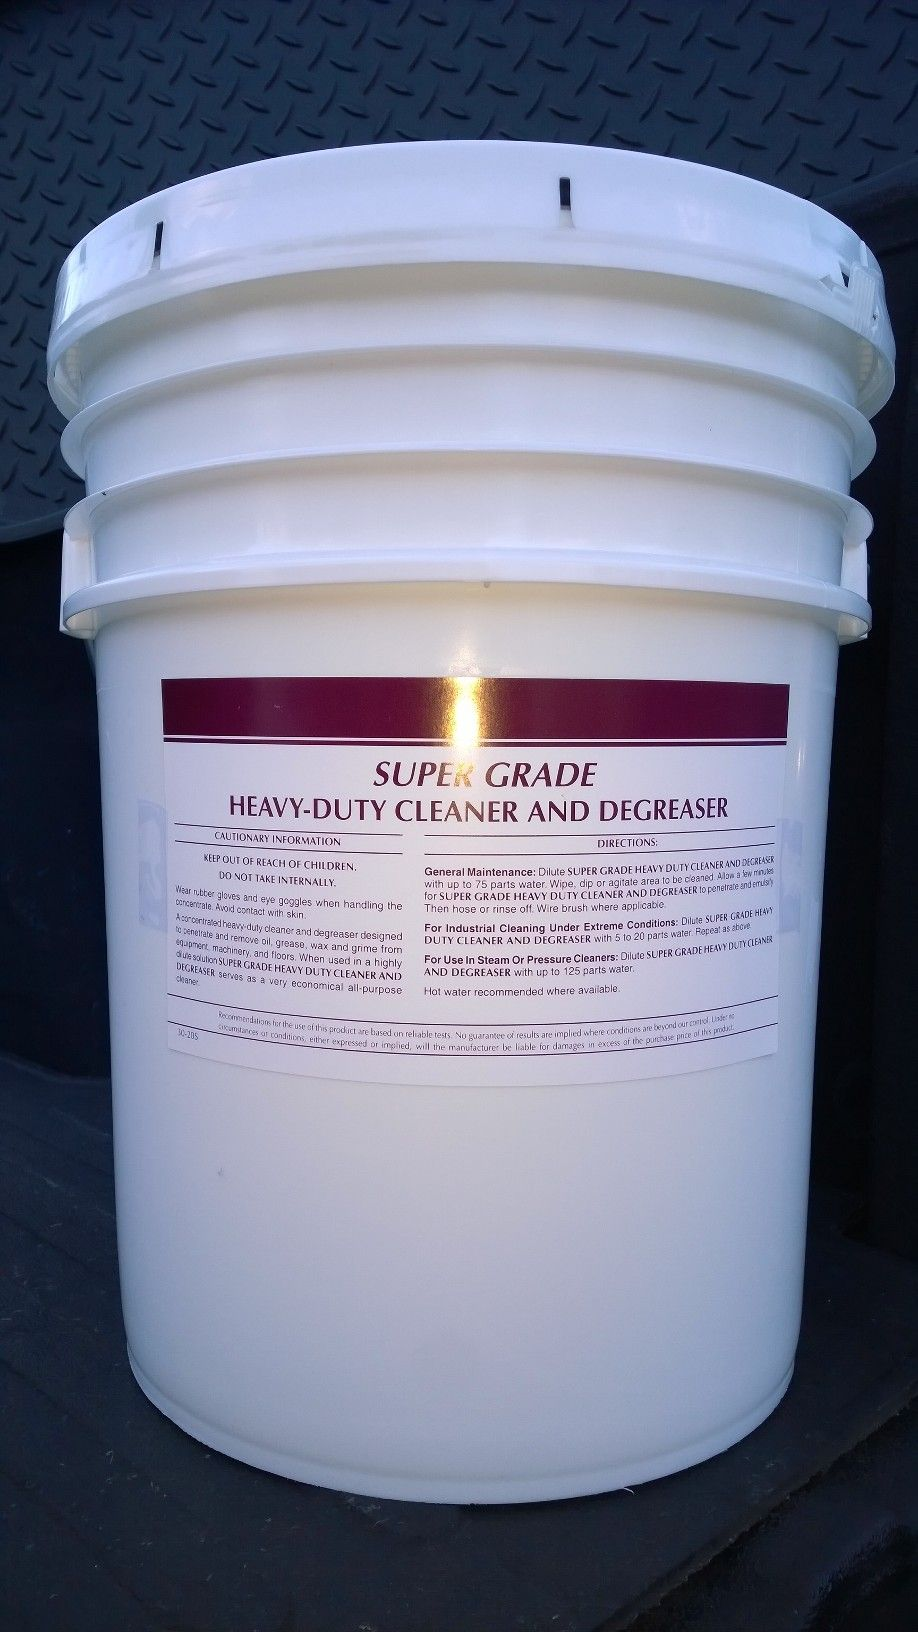 Super Grade Heavy Duty Cleaner Degreaser Liquid 5 Gal Effective Fast Acting More Of The Active Ingredients Work Degreasers Concrete Cleaner Car Wash